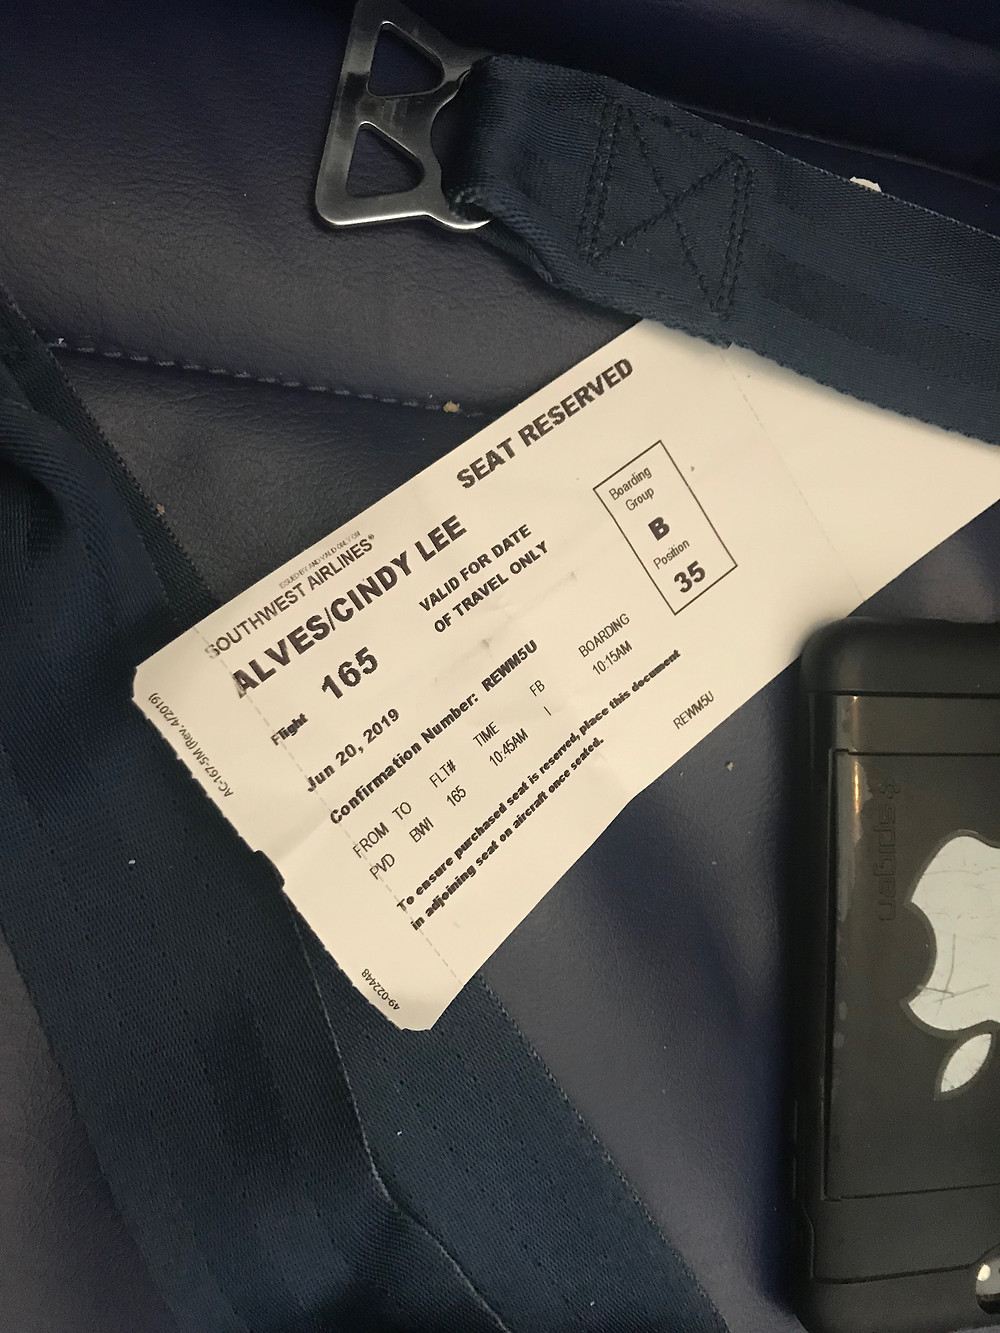 Photo of airplane seat with Seat Reserved ticket and a Black iPhone face down